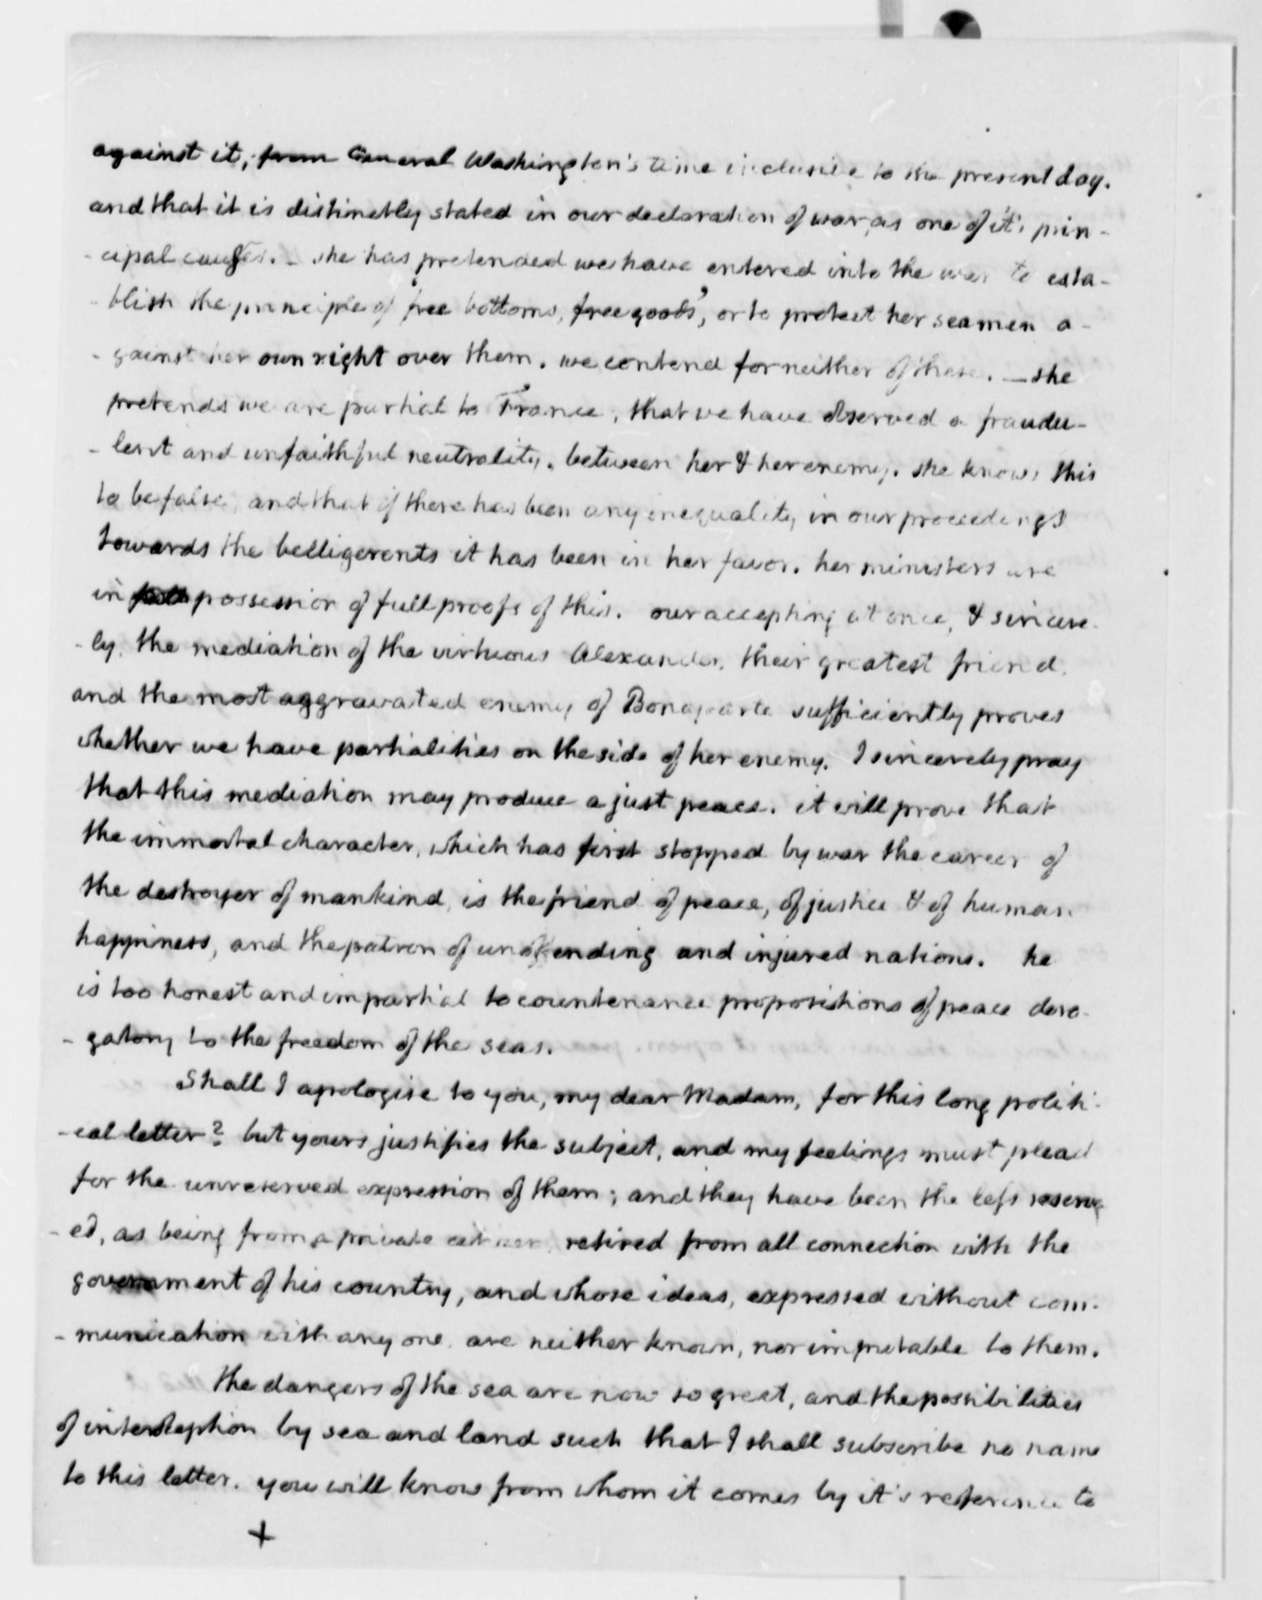 Thomas Jefferson to Anne L. G. N. Stael-Holstein, May 28, 1813